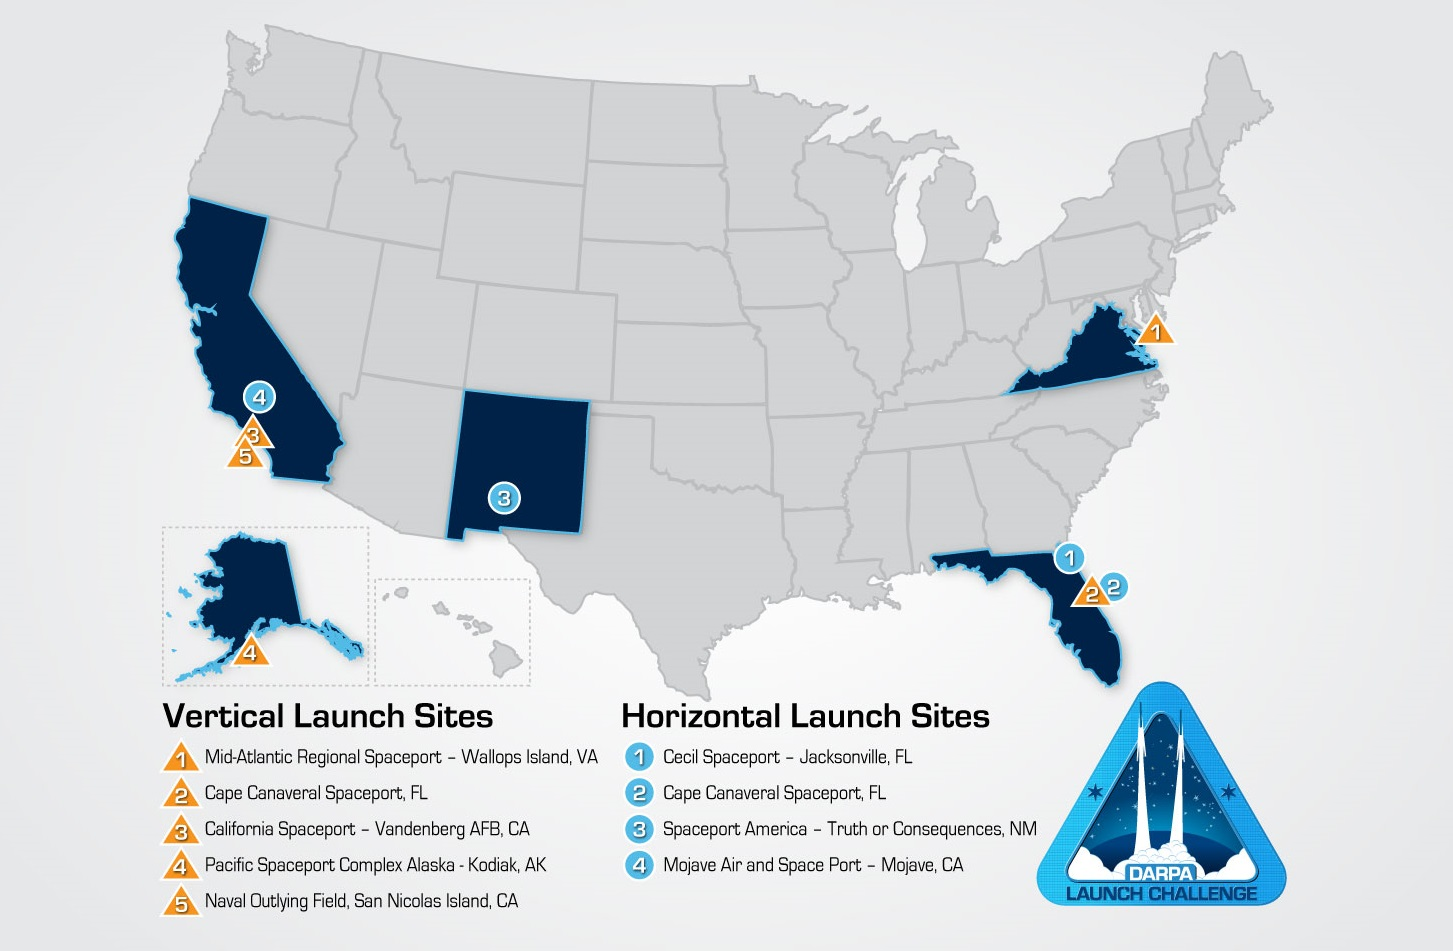 Map of the US showing launch locations for the challenge.